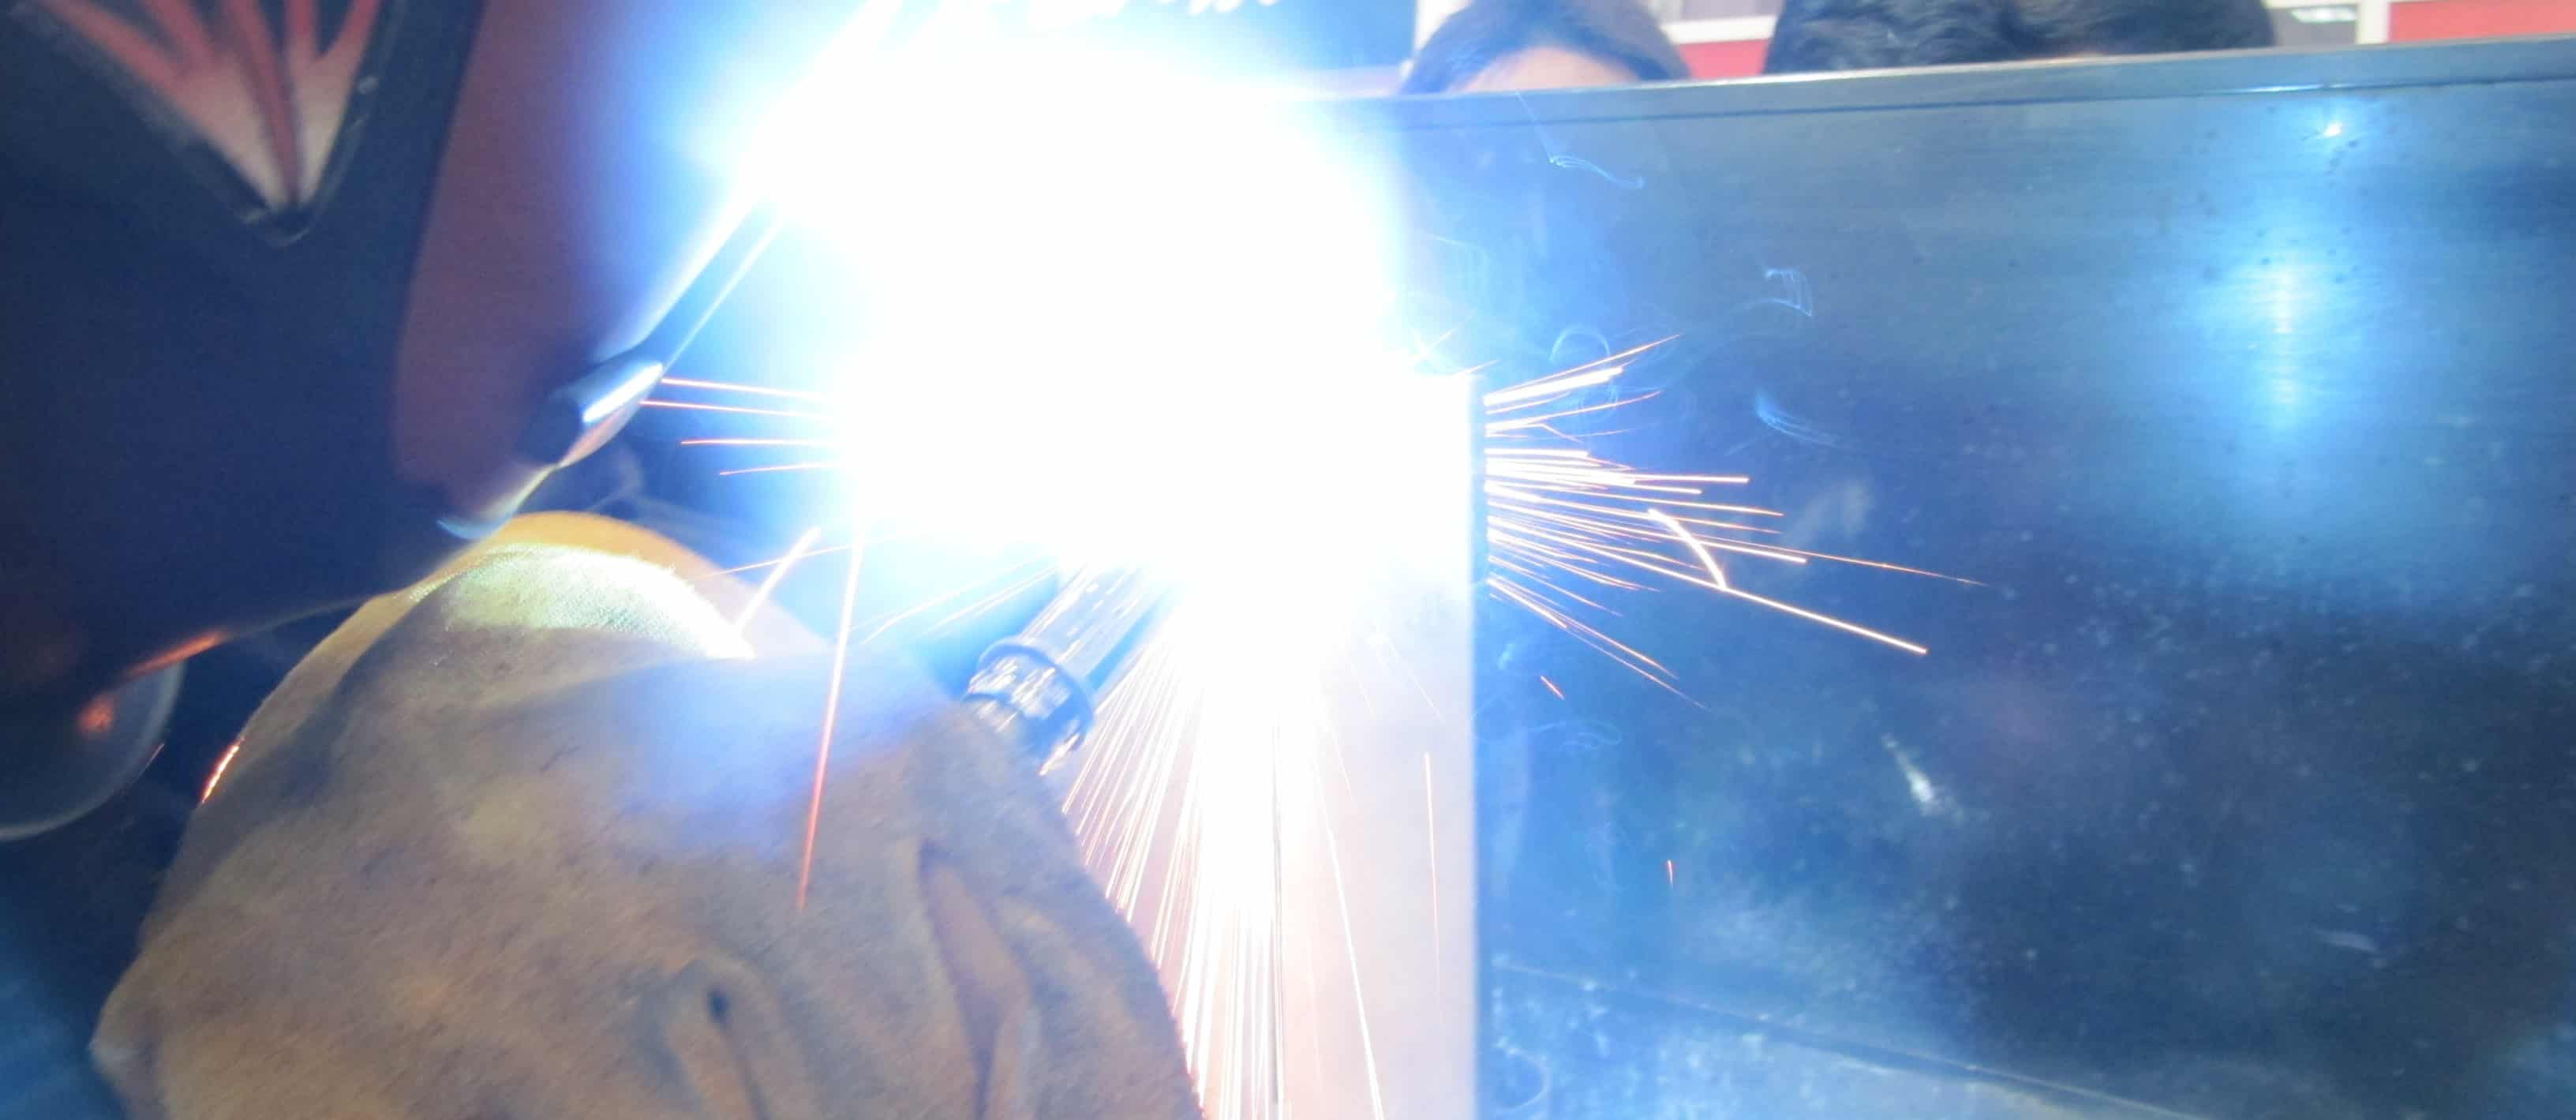 Gas Metal Arc Welding – Gas Shielding